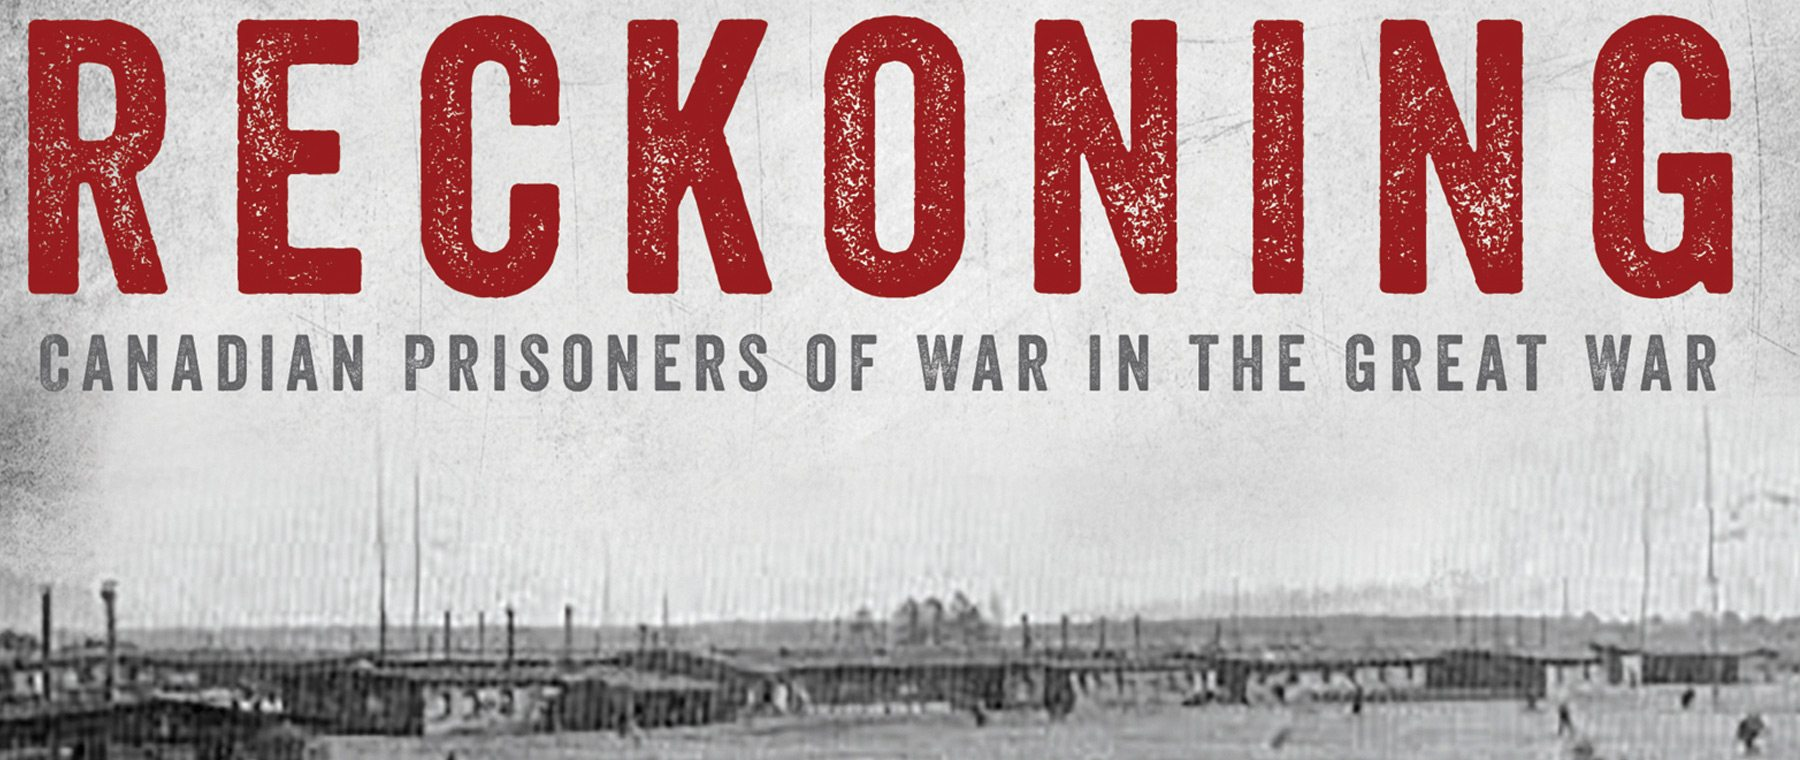 Author captures horrendous conditions Canadians faced as POWs in WWI